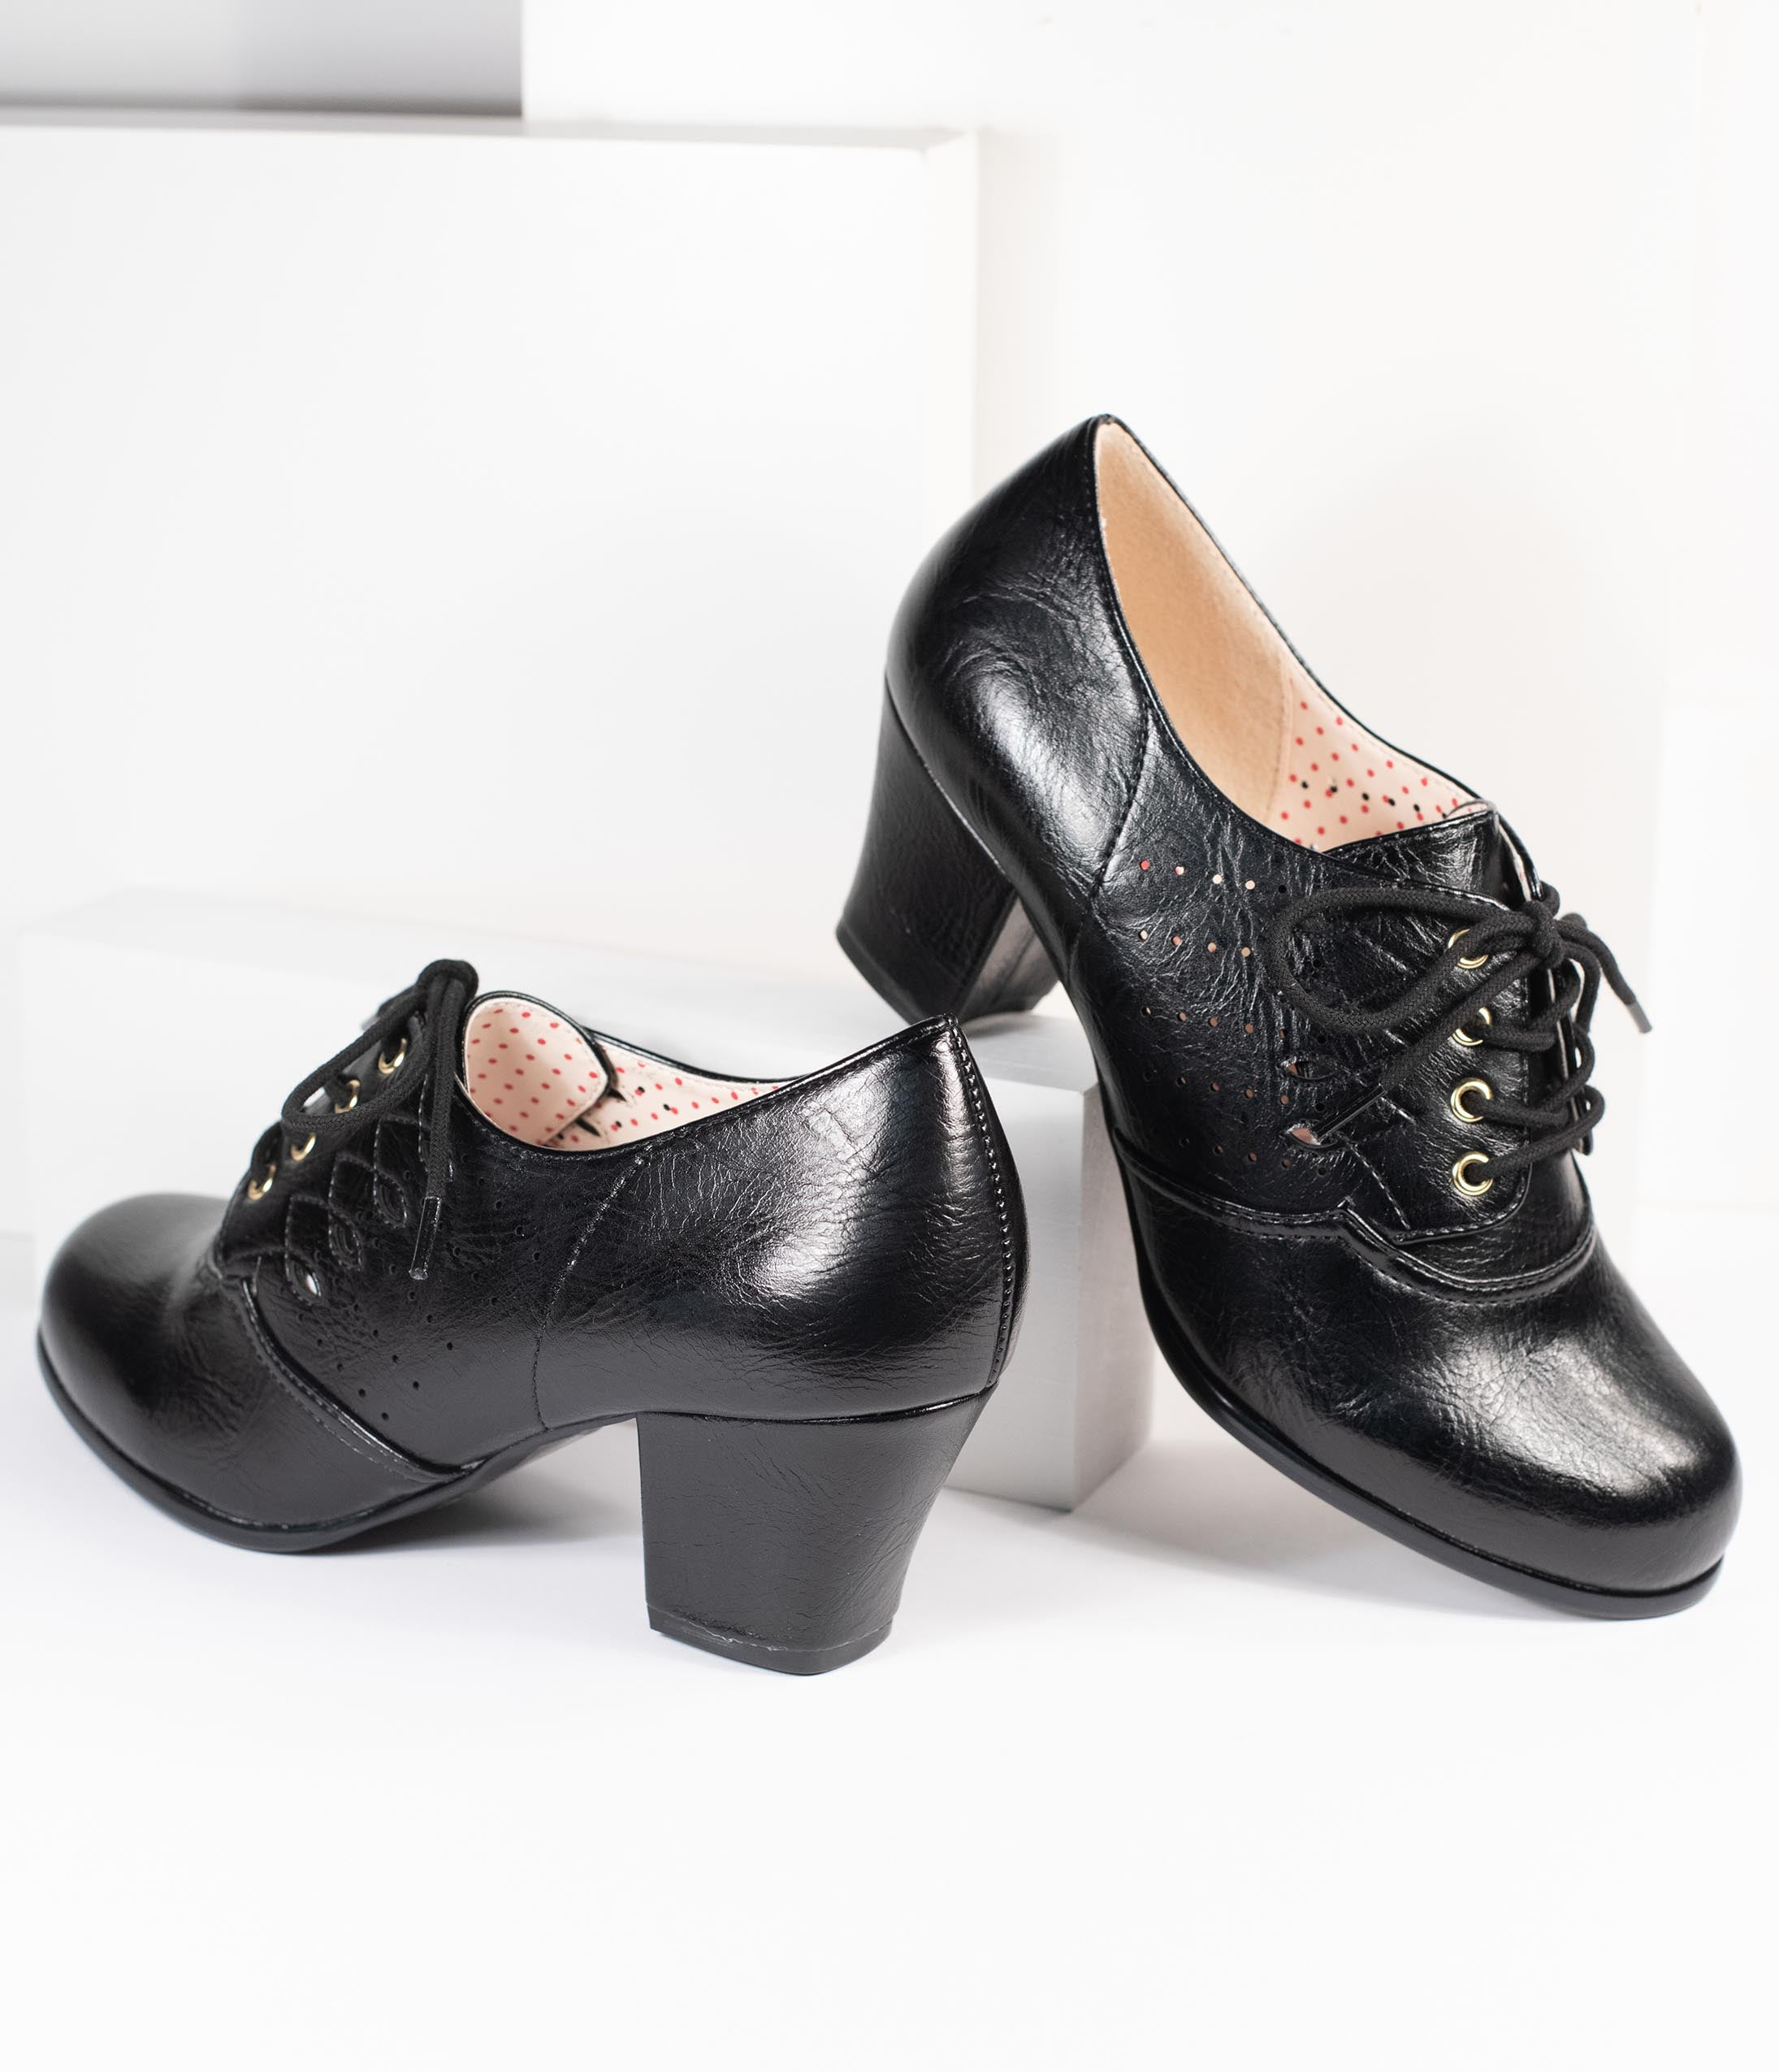 70s Shoes, Platforms, Boots, Heels | 1970s Shoes B.a.i.t. Black Leatherette Rosie Oxford Heel $74.00 AT vintagedancer.com